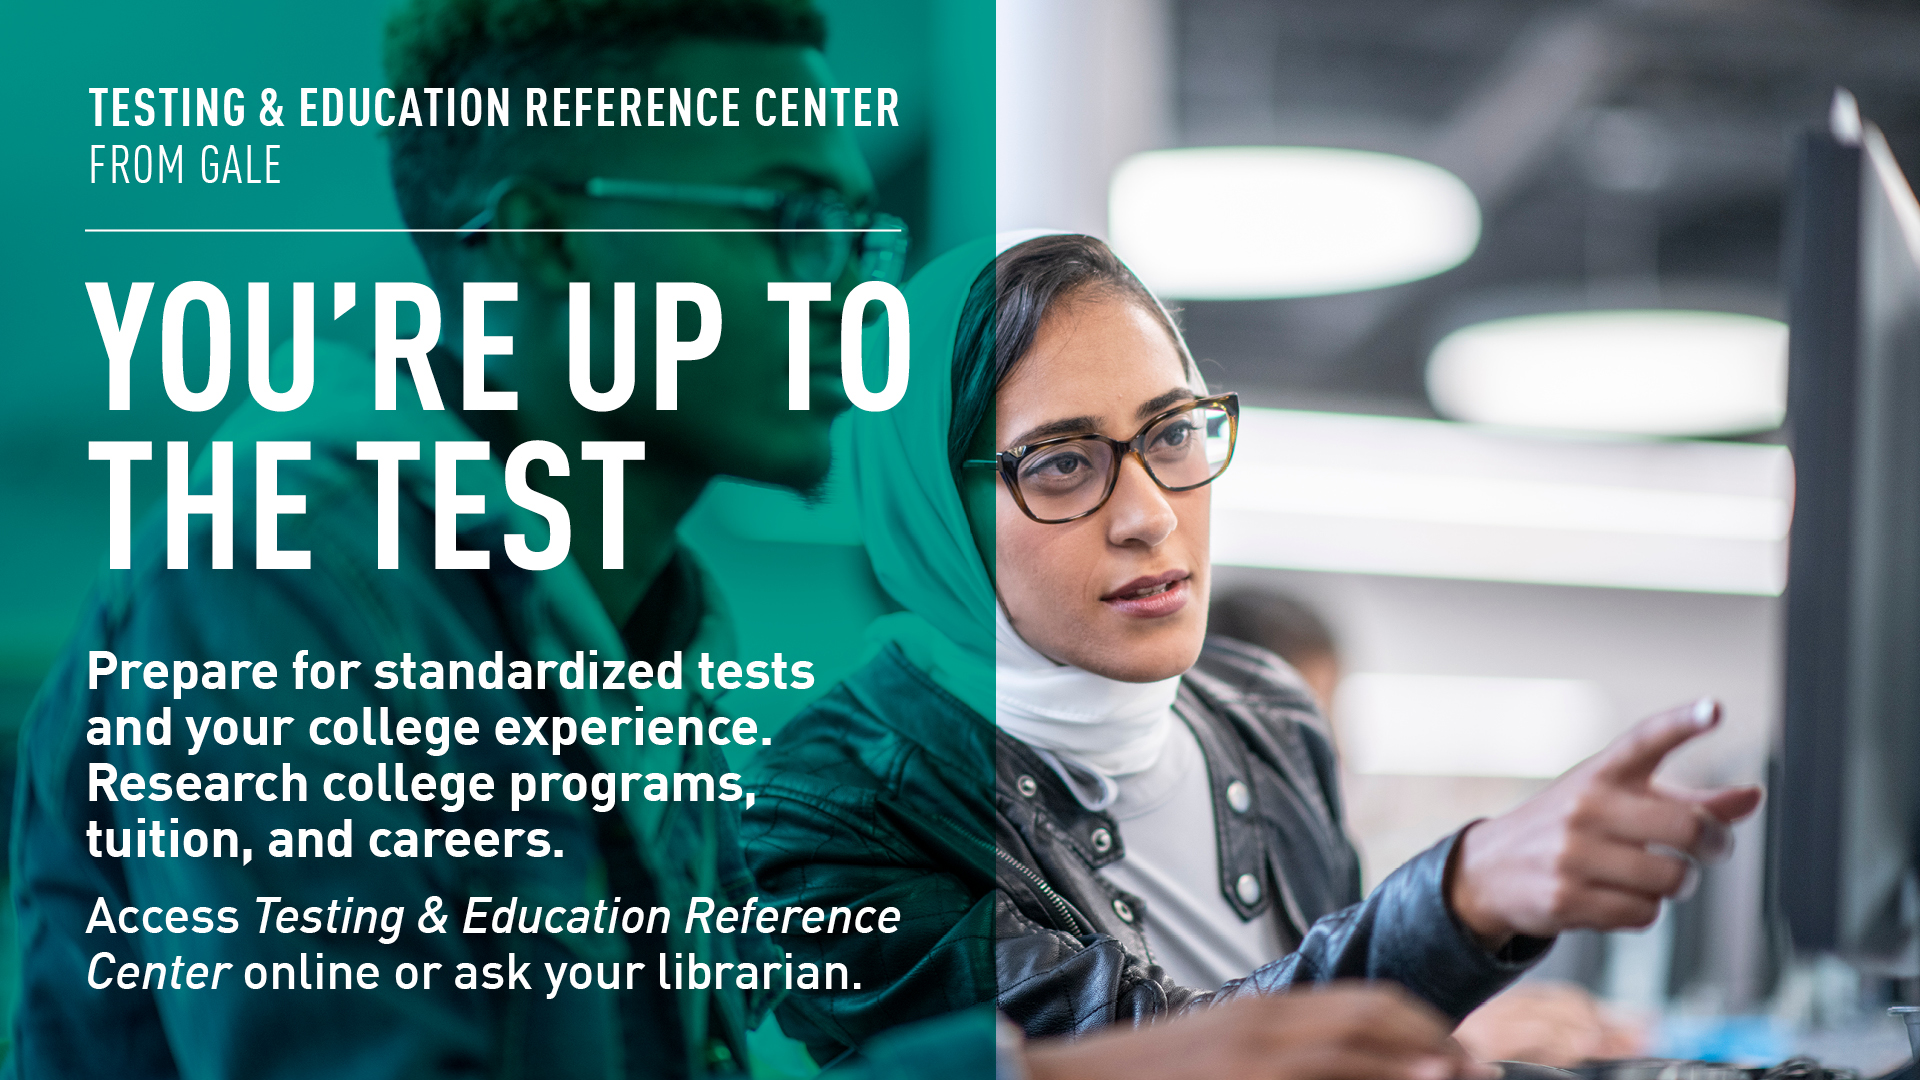 Testing & Education Reference Center (TERC)